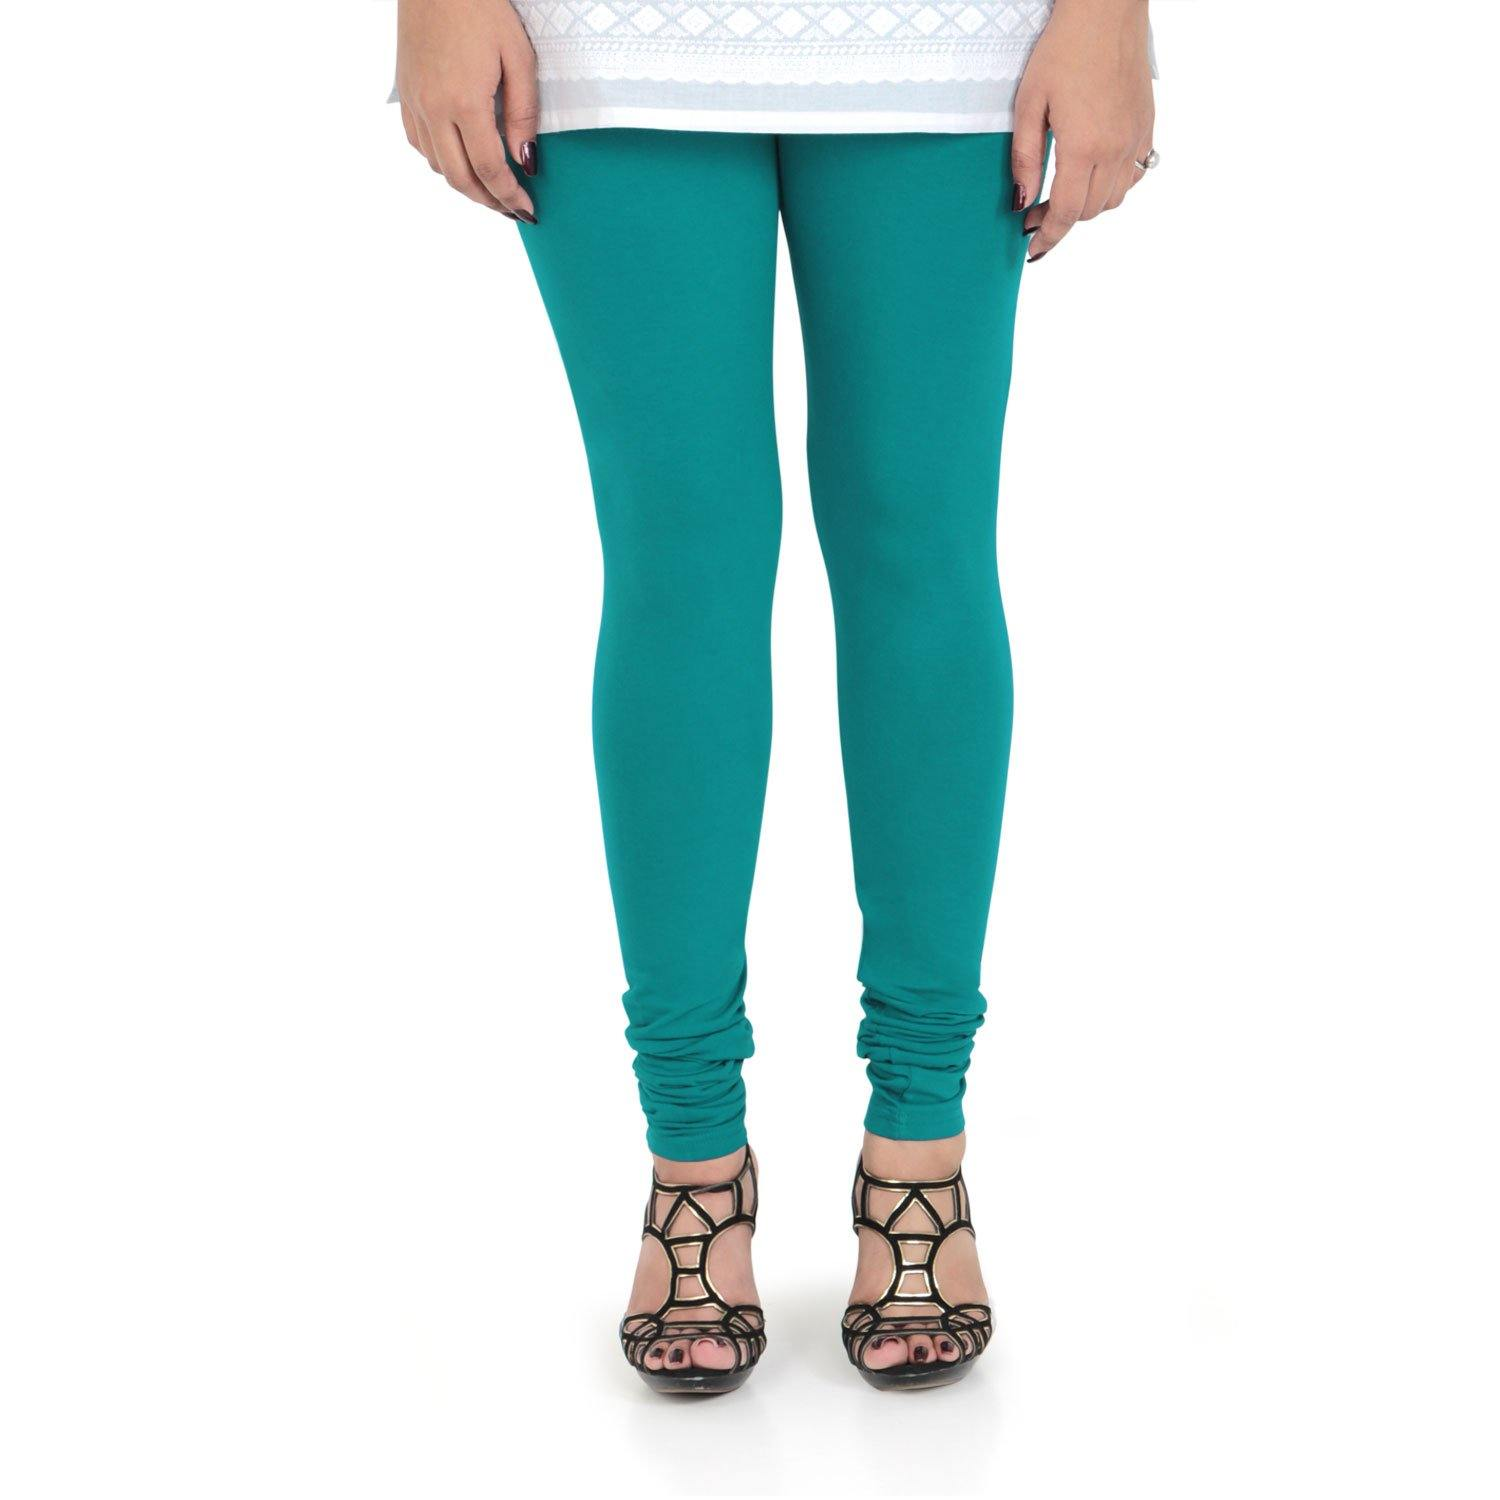 Vami Women's Cotton Stretchable Churidar Legging - Water Green